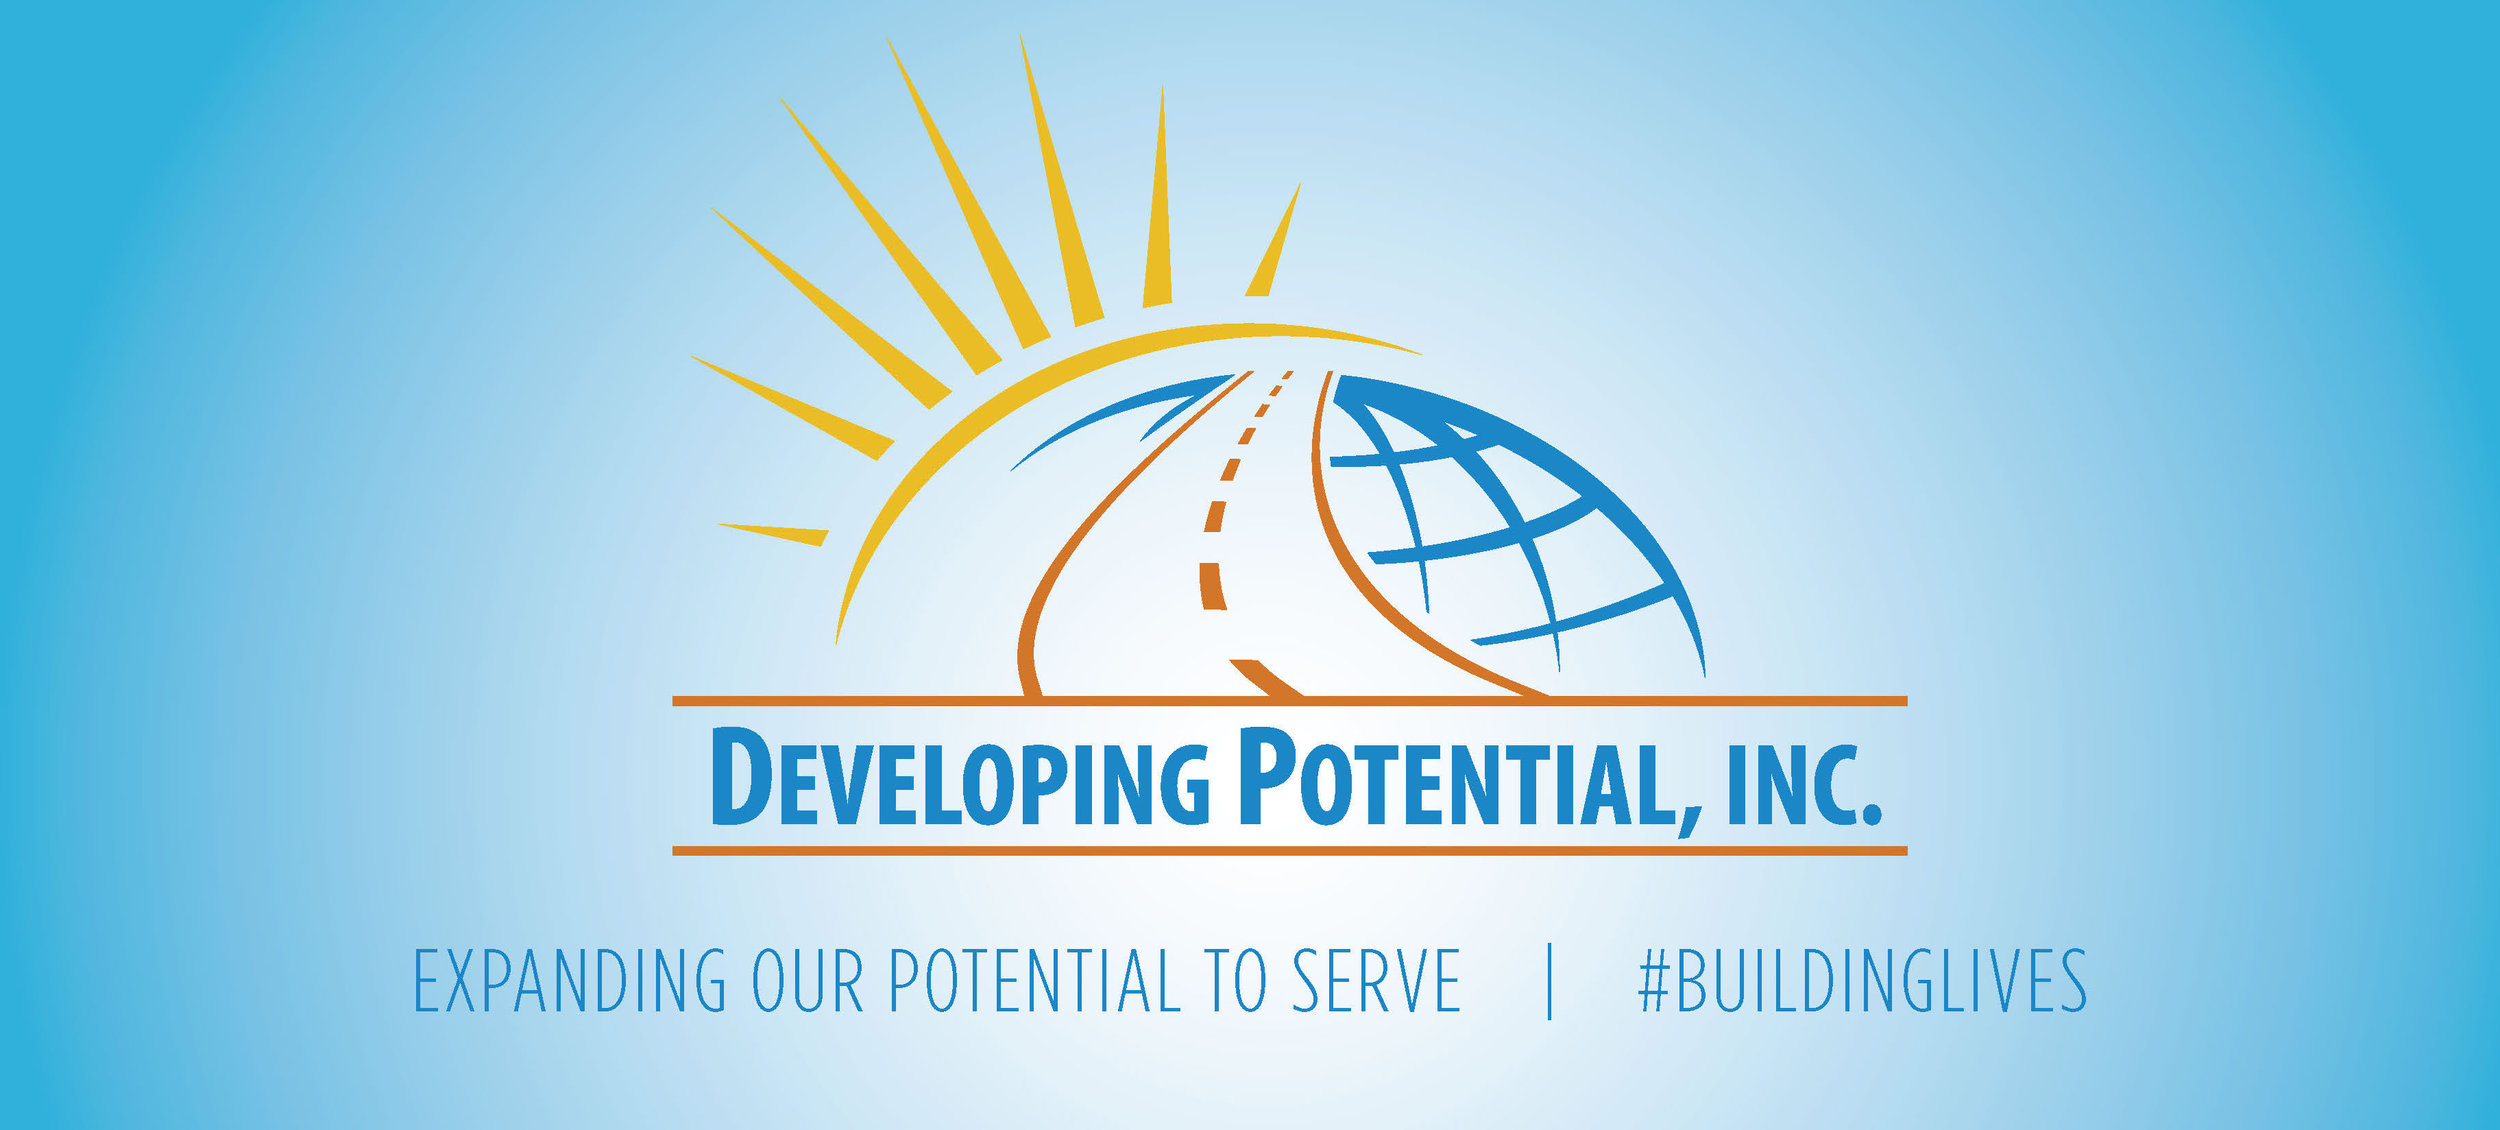 Developing Potential is expanding our capacity and Building Lives! Please join our campaign to expand our services and help alleviate our wait list!